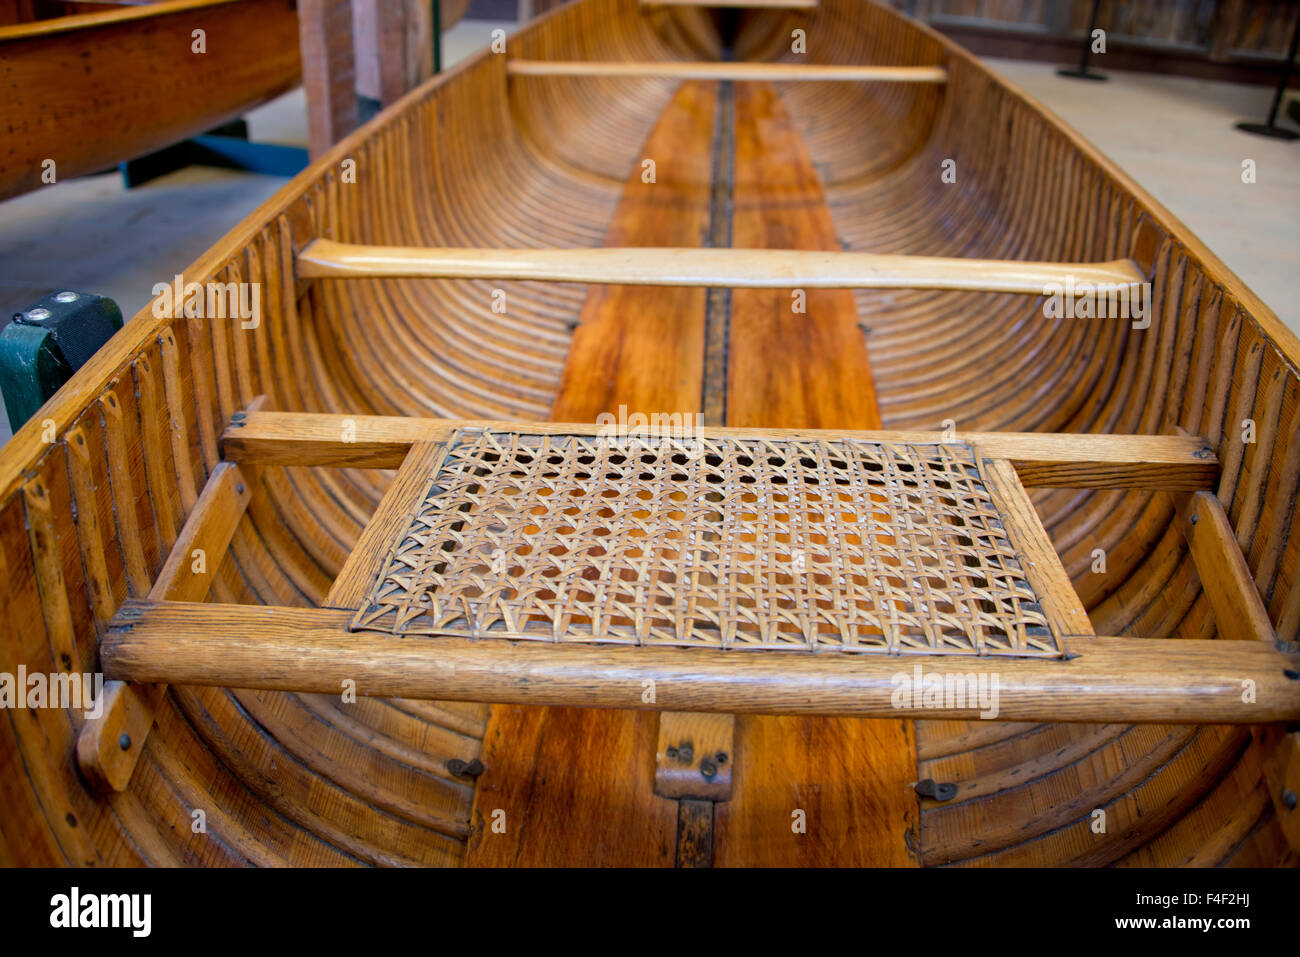 New York, Clayton. Antique Boat Museum.16 foot vintage Peterborough Stock Photo, Royalty Free ...